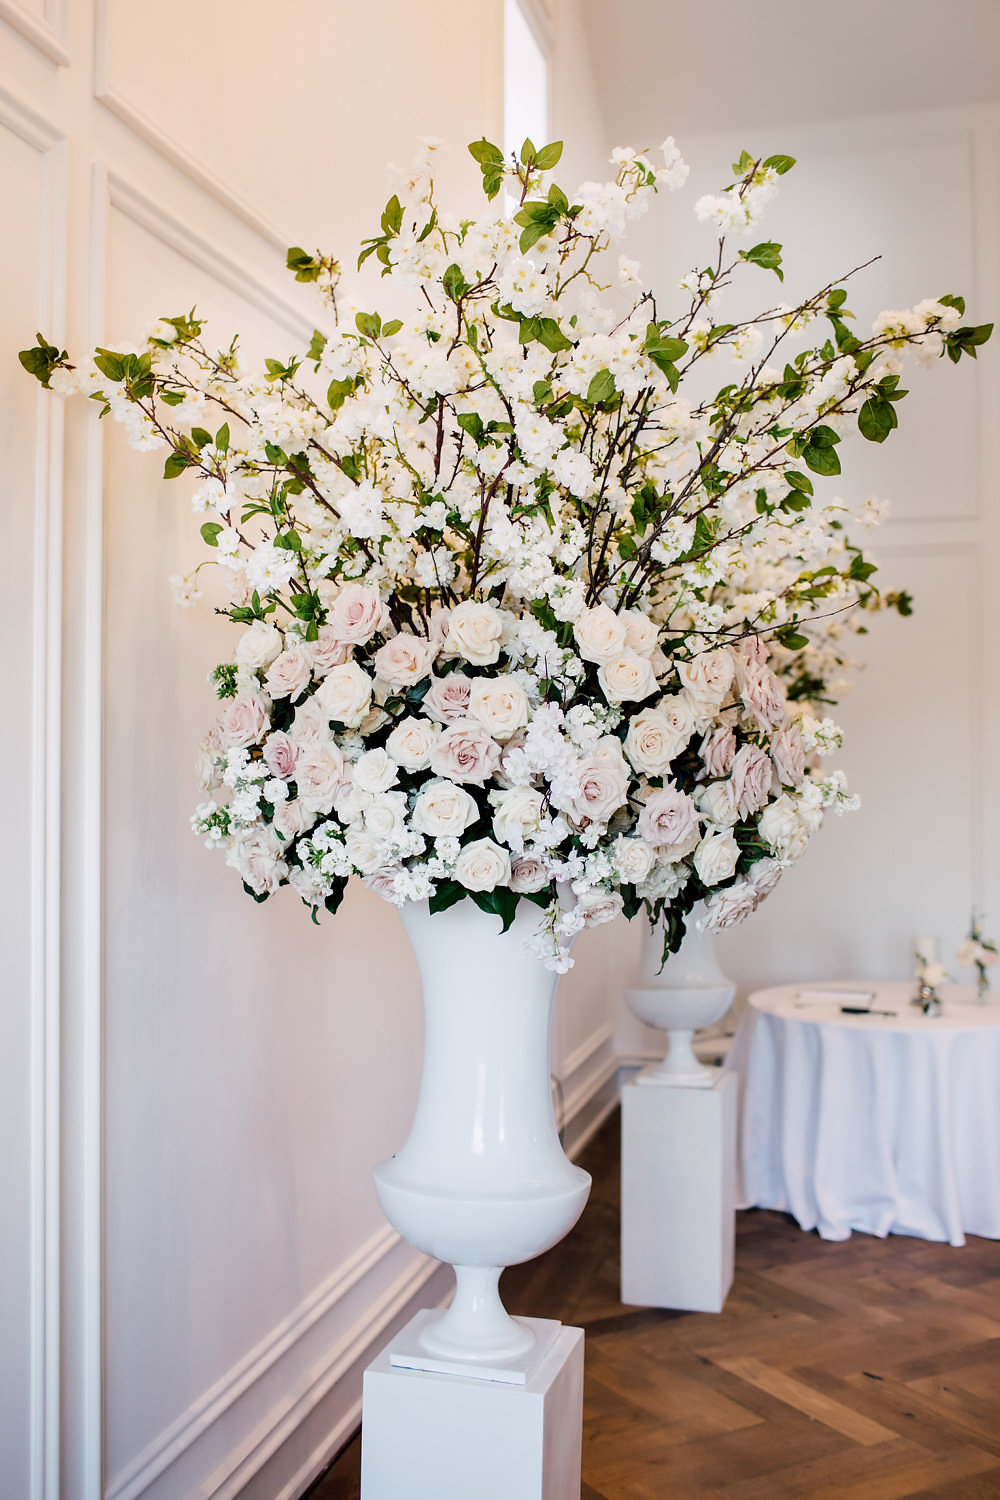 Beautiful Floral Arrangements in the Heritage House